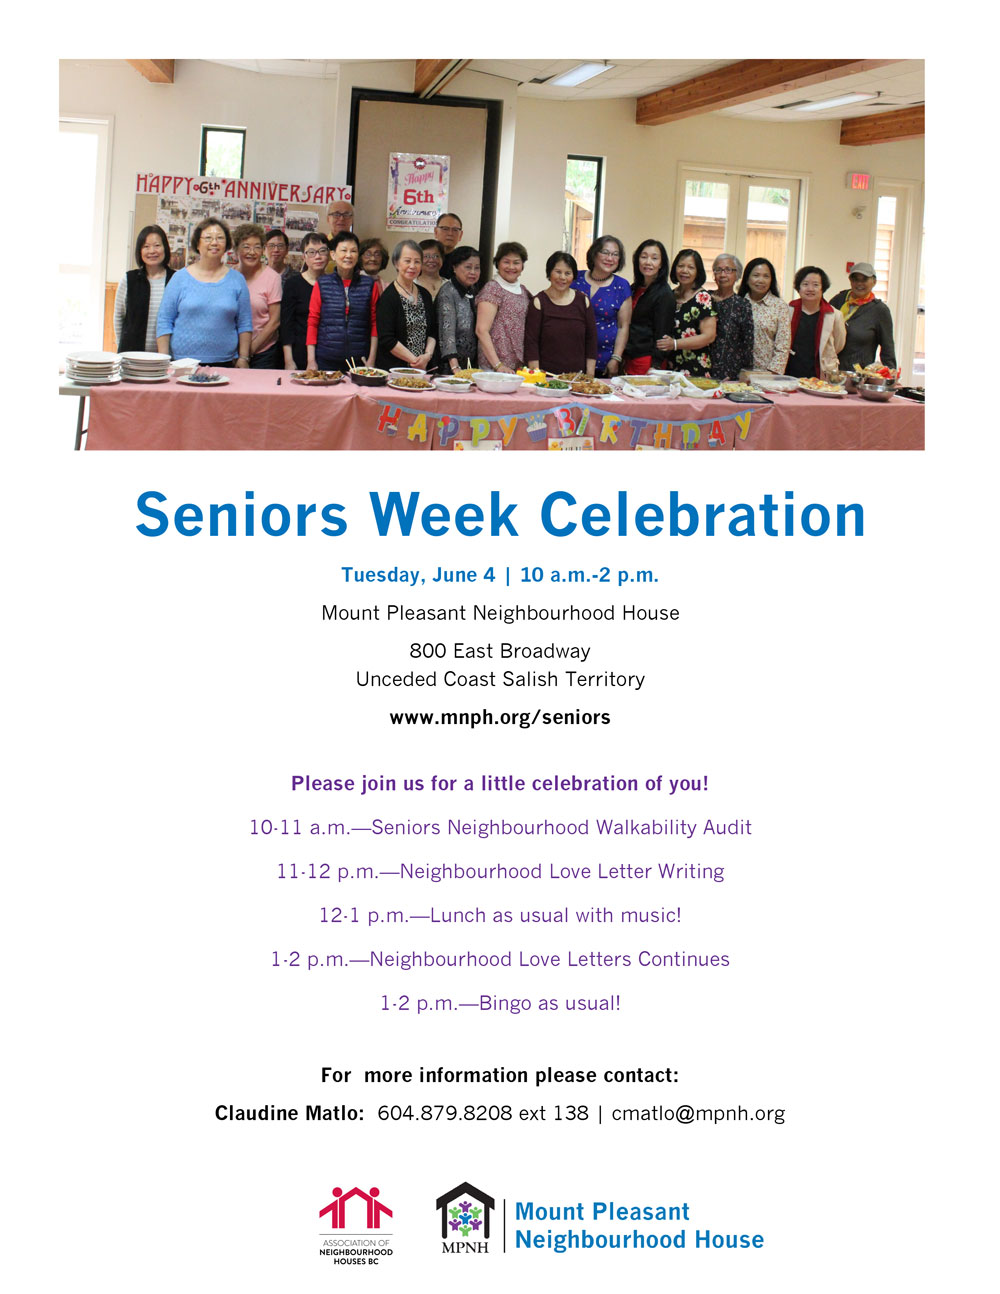 An image of the poster with event details, featuring a photo of more than 20 seniors from different cultural backgrounds celebrating a birthday.